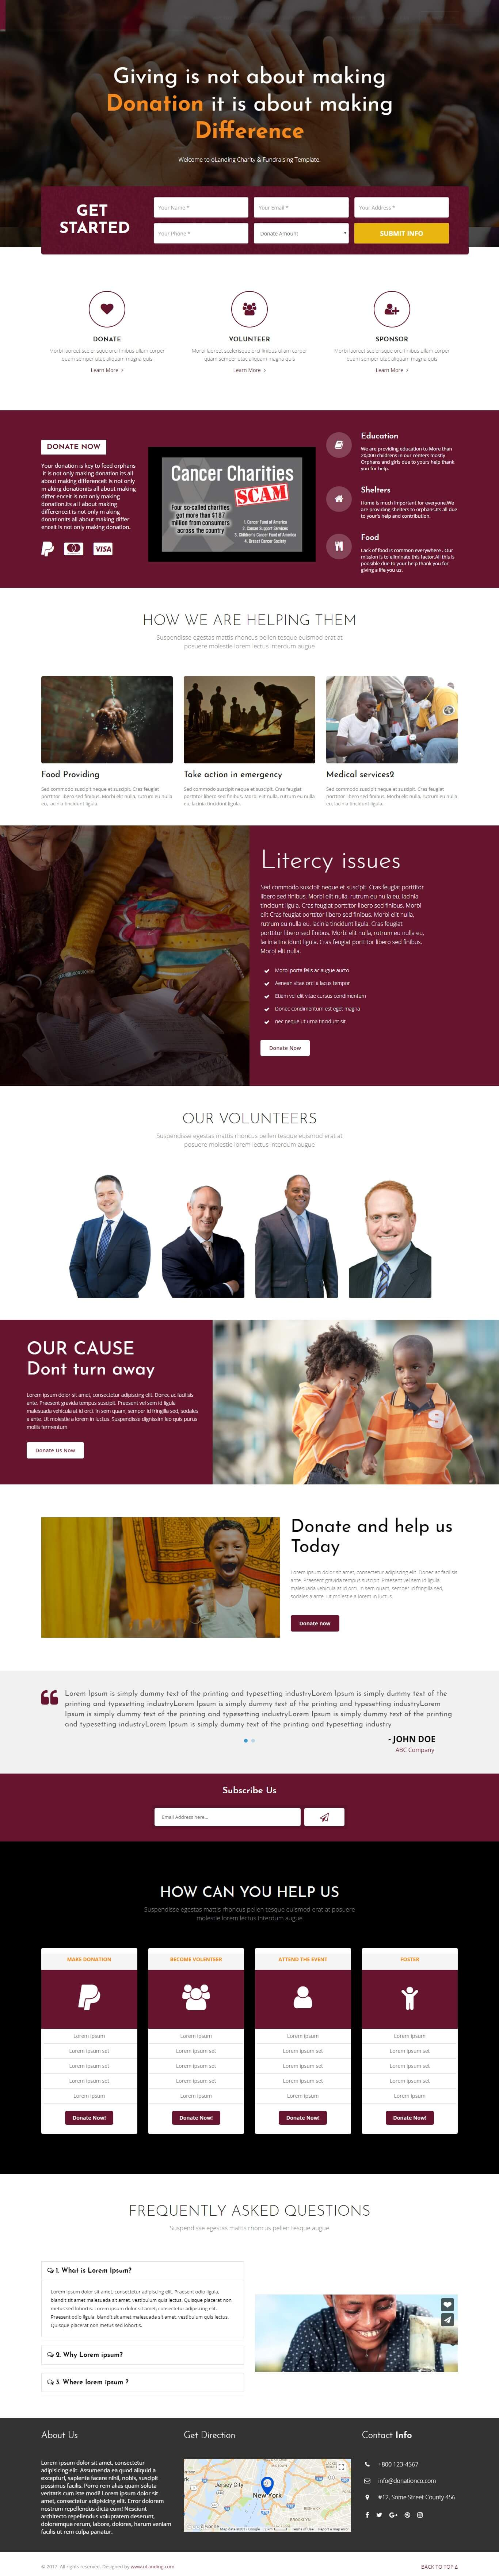 charity and donation landing page design template to generate more